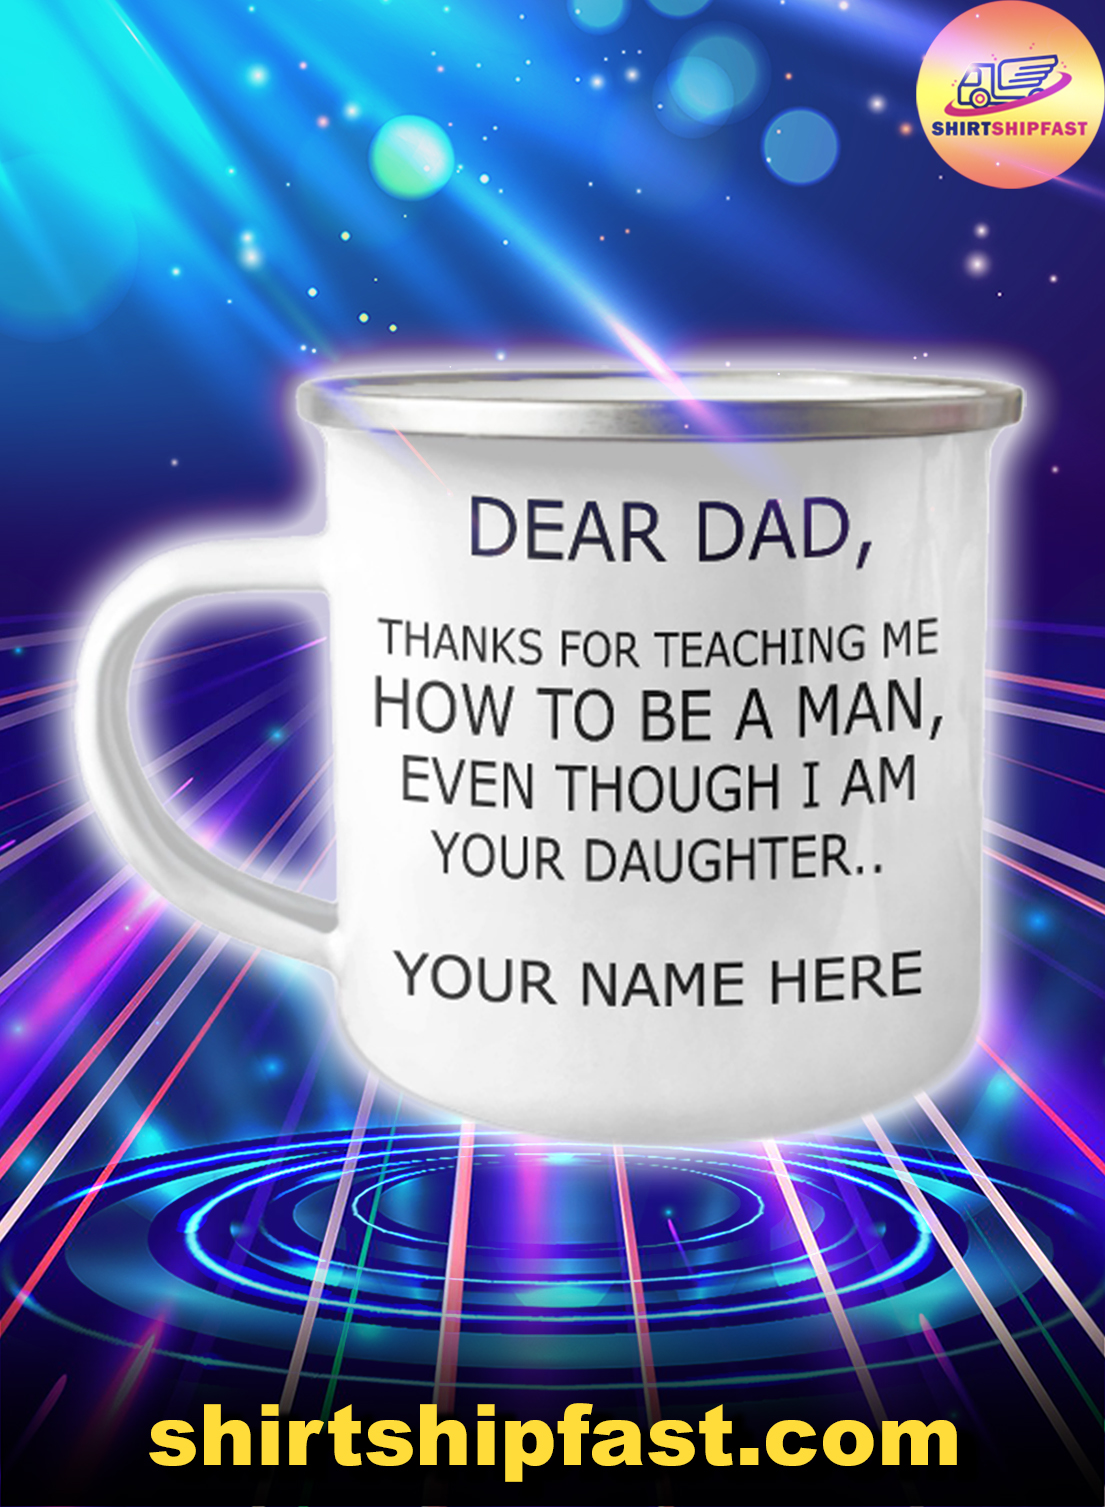 Personalized dear dad thanks for teaching me how to be a man campfire mug - Picture 1